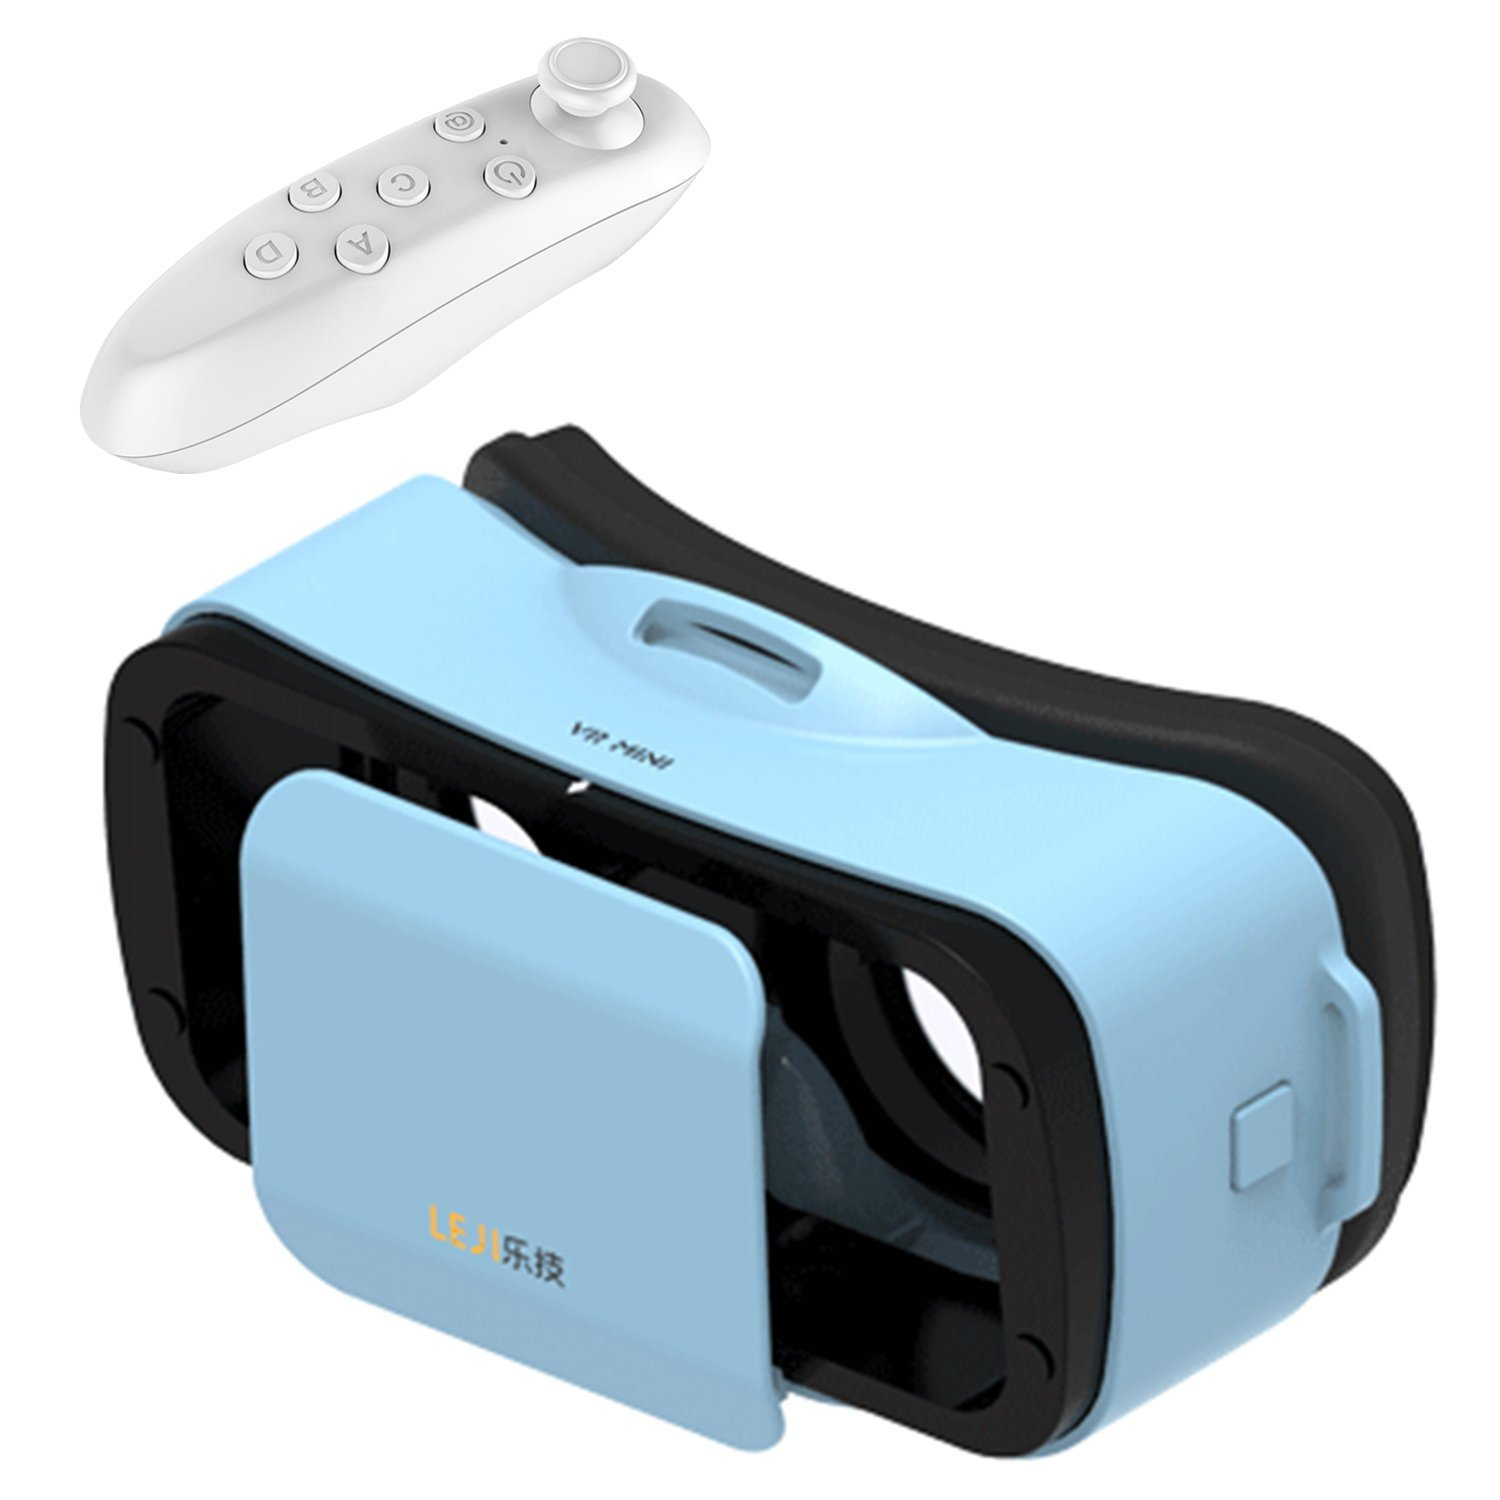 "Mini 3D VR Glasses/Headset, Tsanglight Virtual Reality Headset + Remote Controller for IOS iPhone 7/6/6S Plus, Android Samsung Galaxy S7 Edge S7/6 /J7/A5/A3 2016 & Other 4.5""-5.5"" Cellphone - Blue"